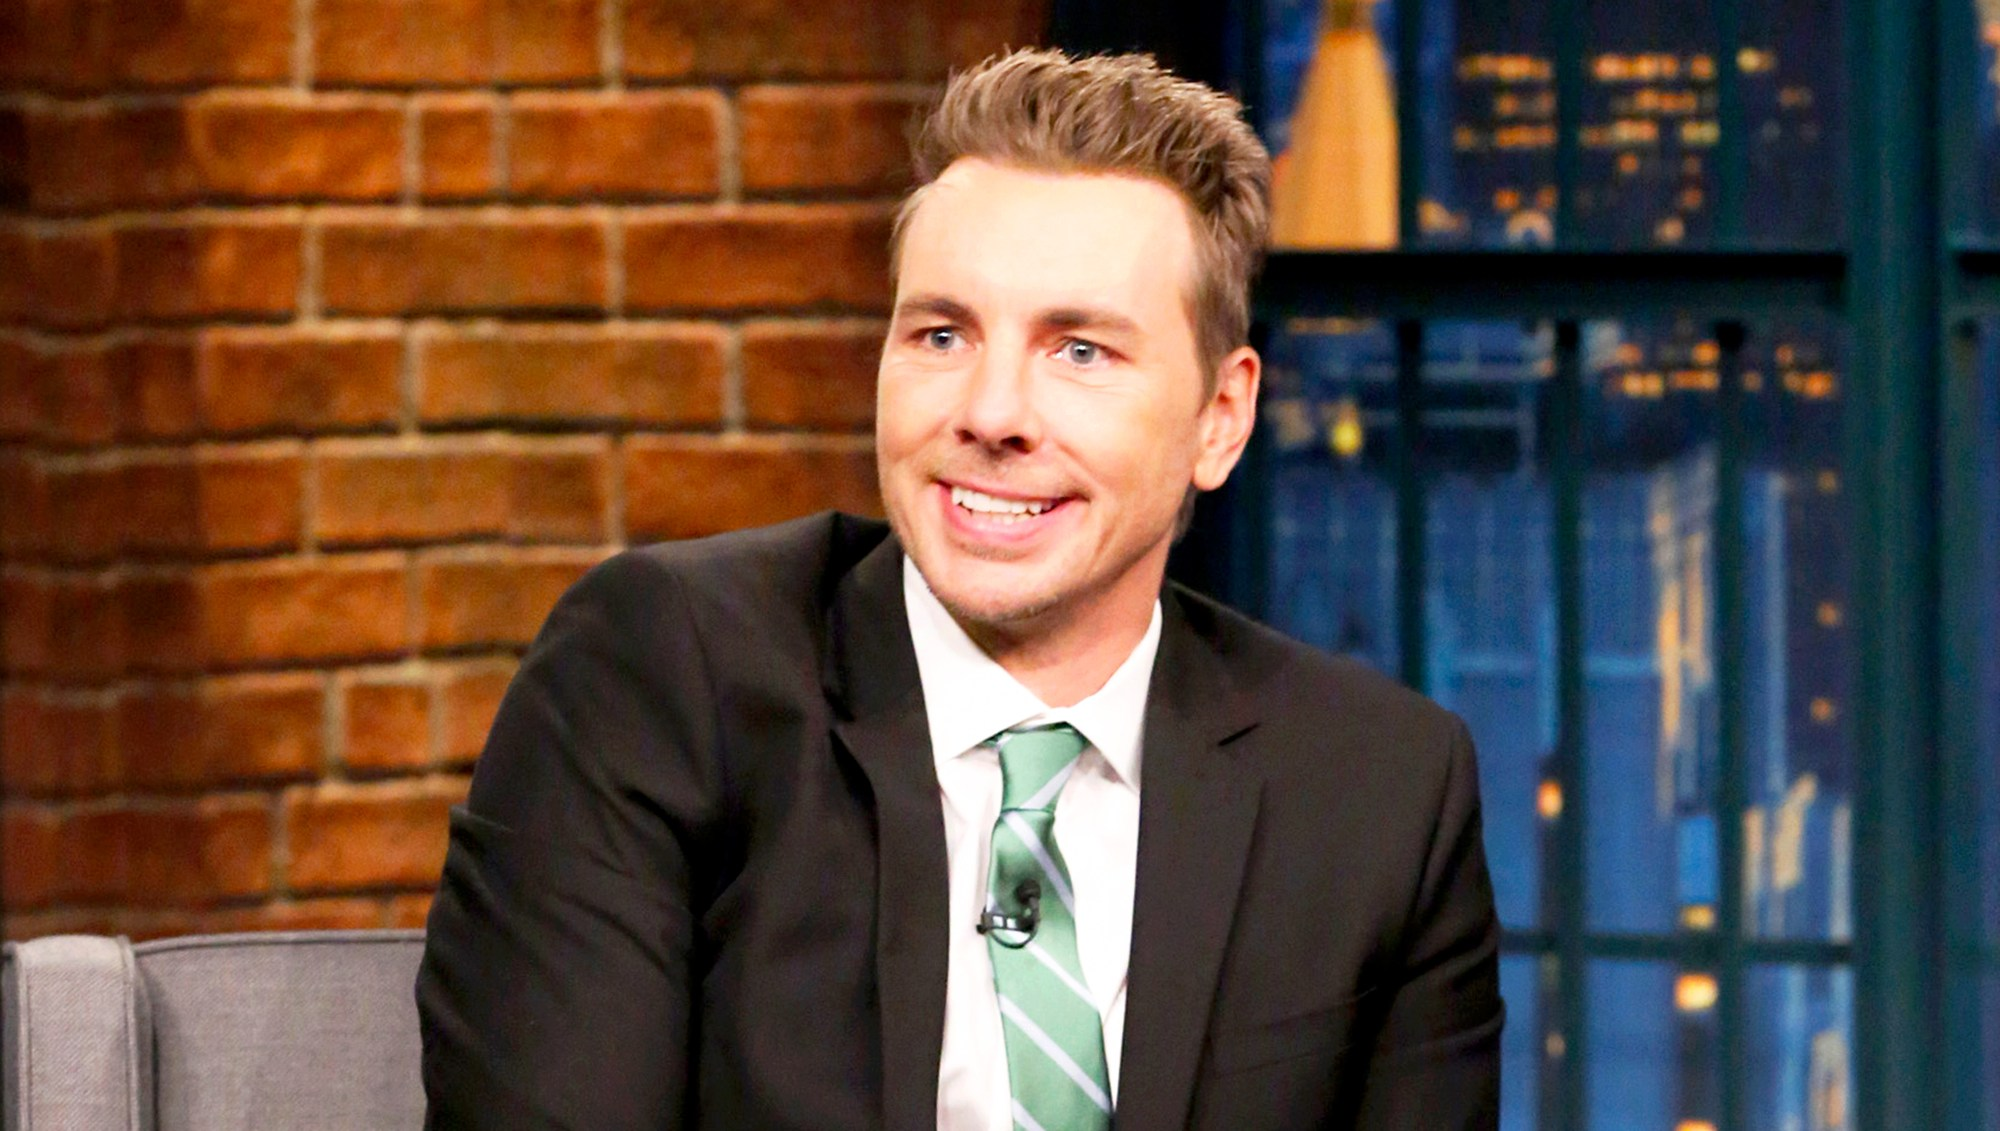 Dax Shepherd during 'Late Night with Seth Meyers'